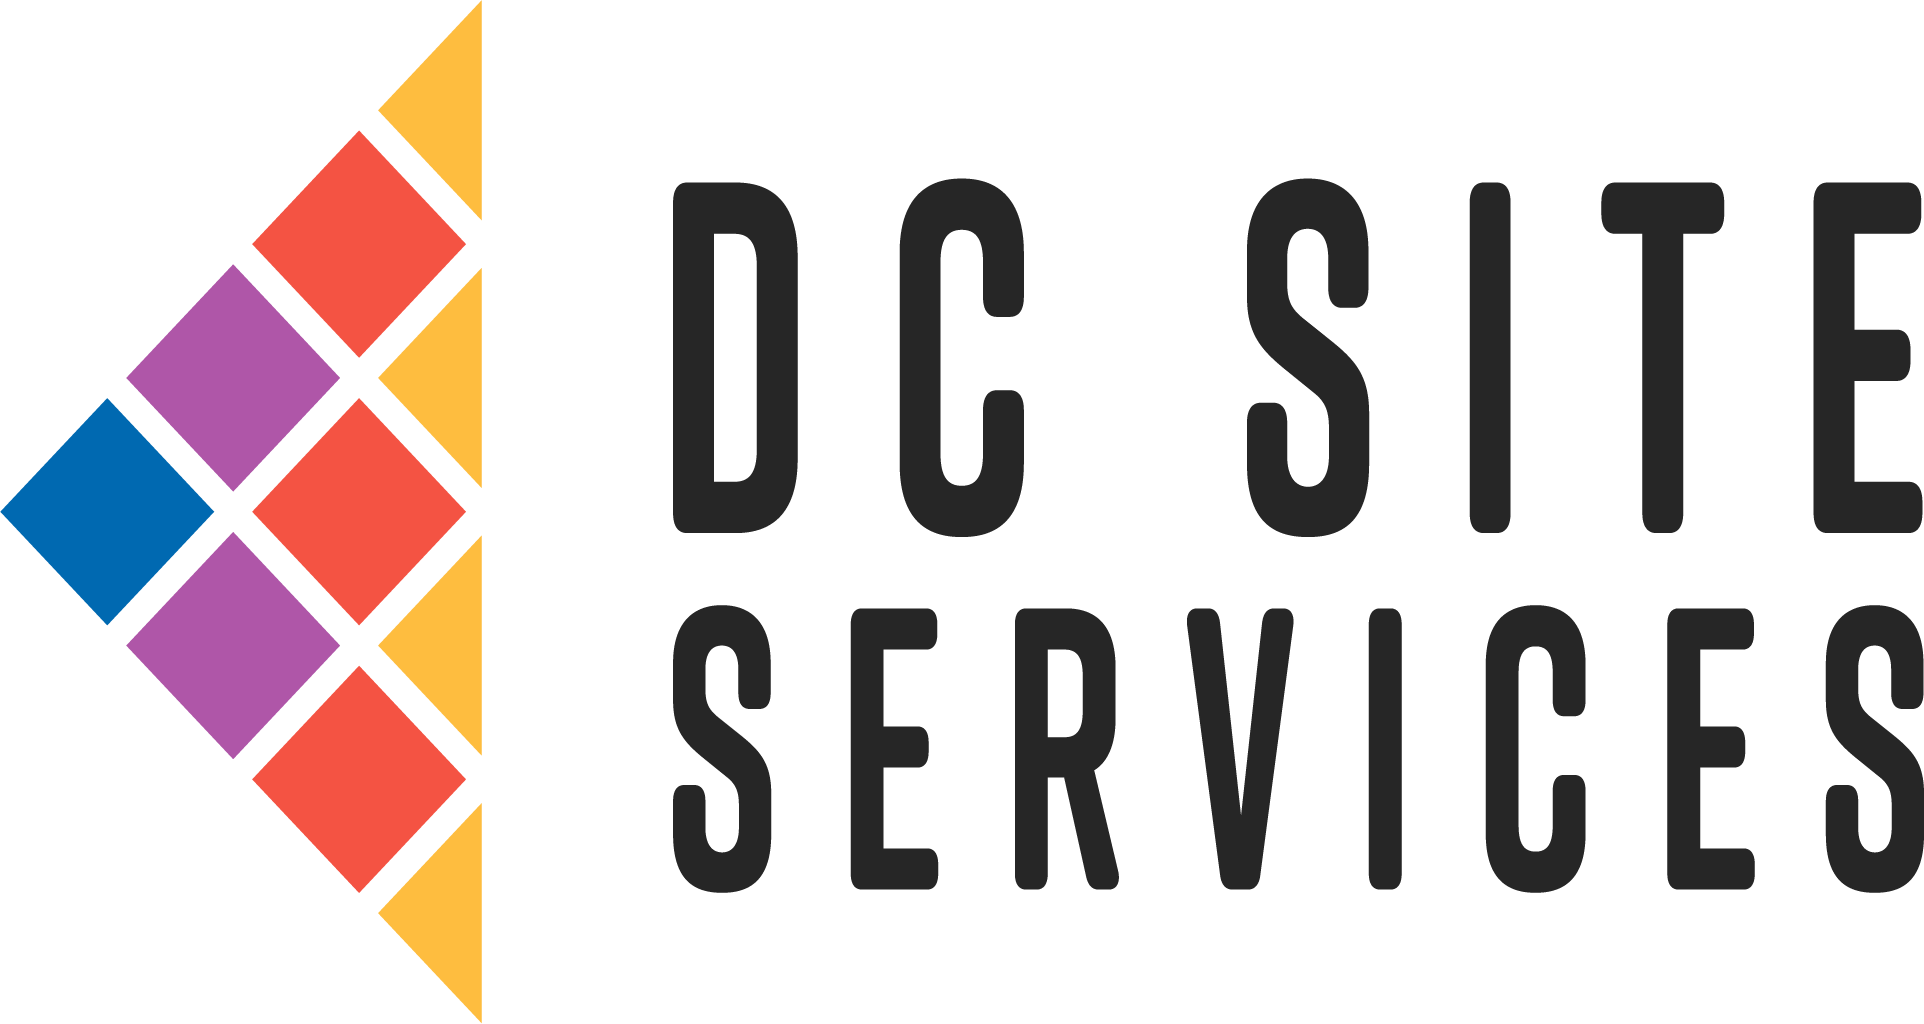 DC Site Services Volunteers